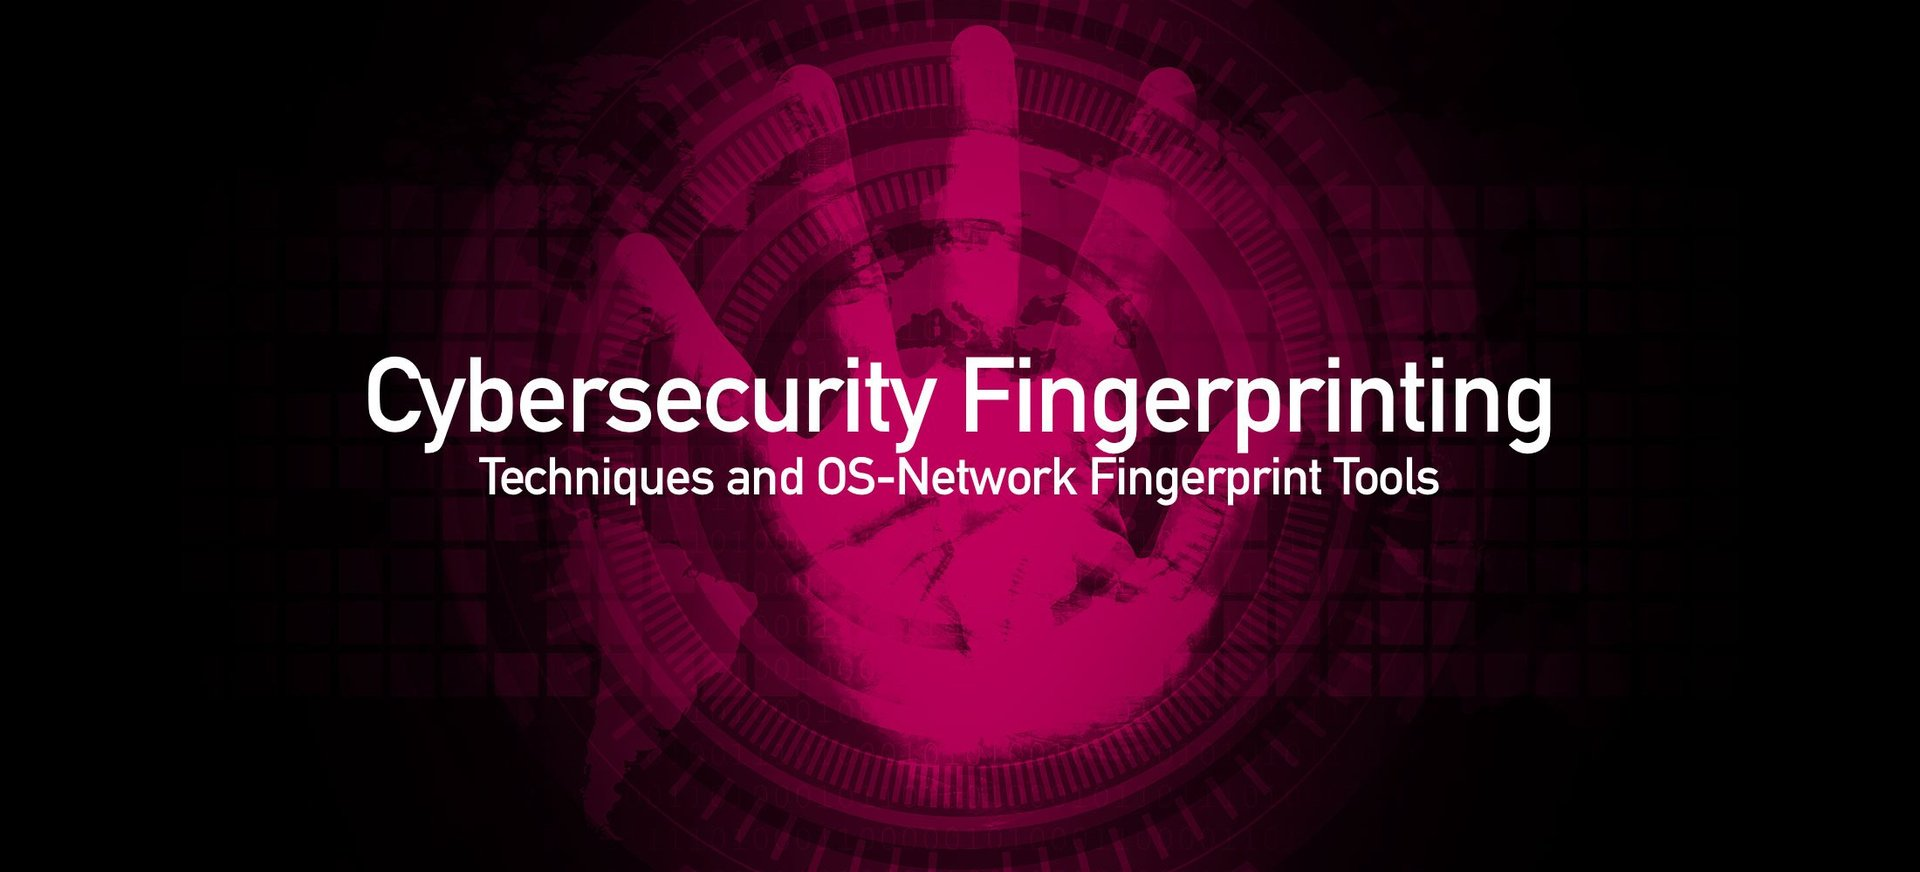 Cybersecurity Fingerprinting: What is it? Fingerprint Techniques and